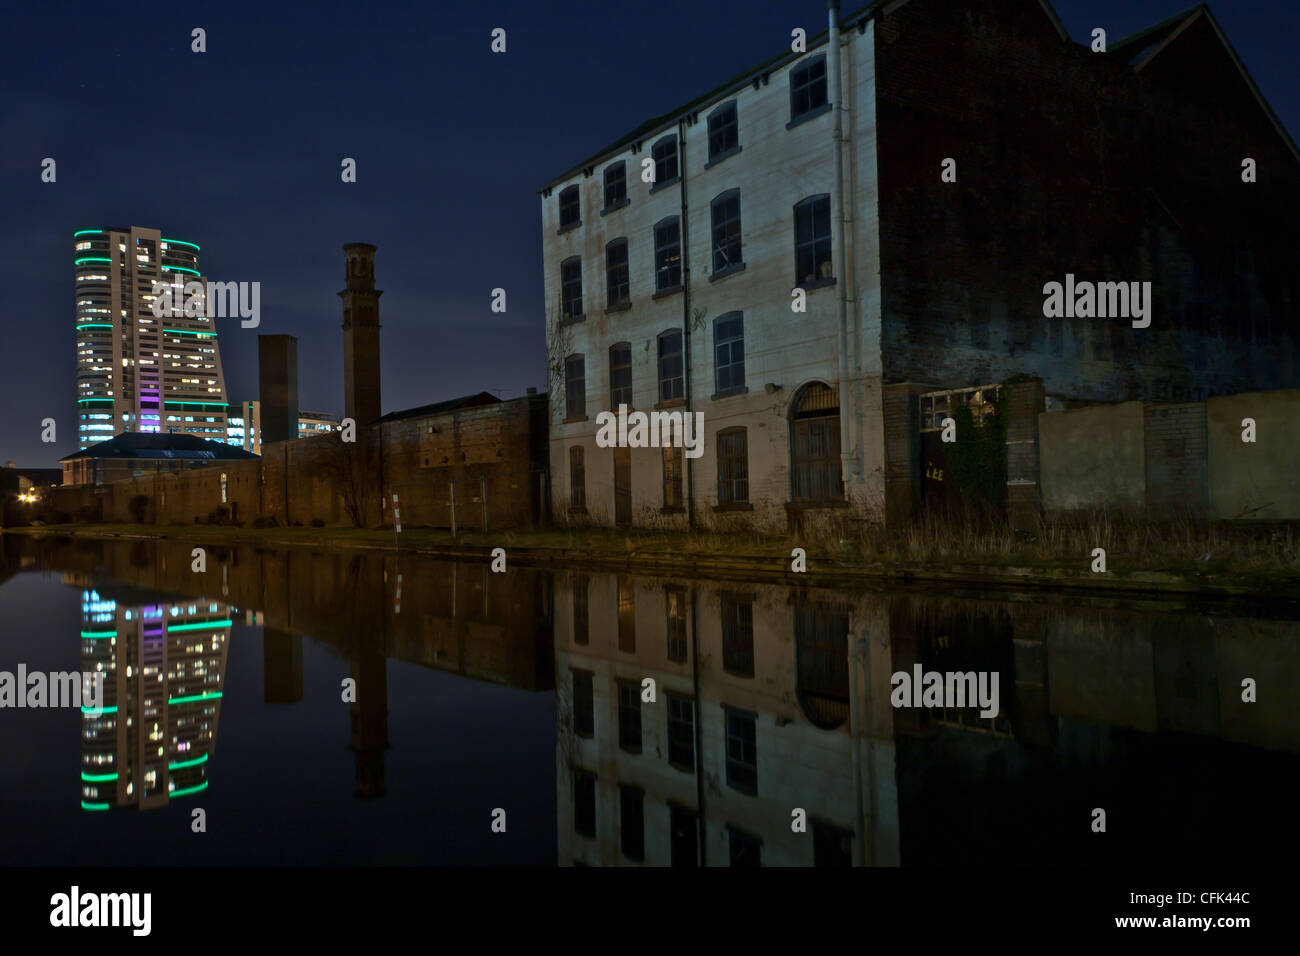 Bridgewater Place (aka The Dalek) reflected in the Leeds to Liverpool canal at night - Stock Image